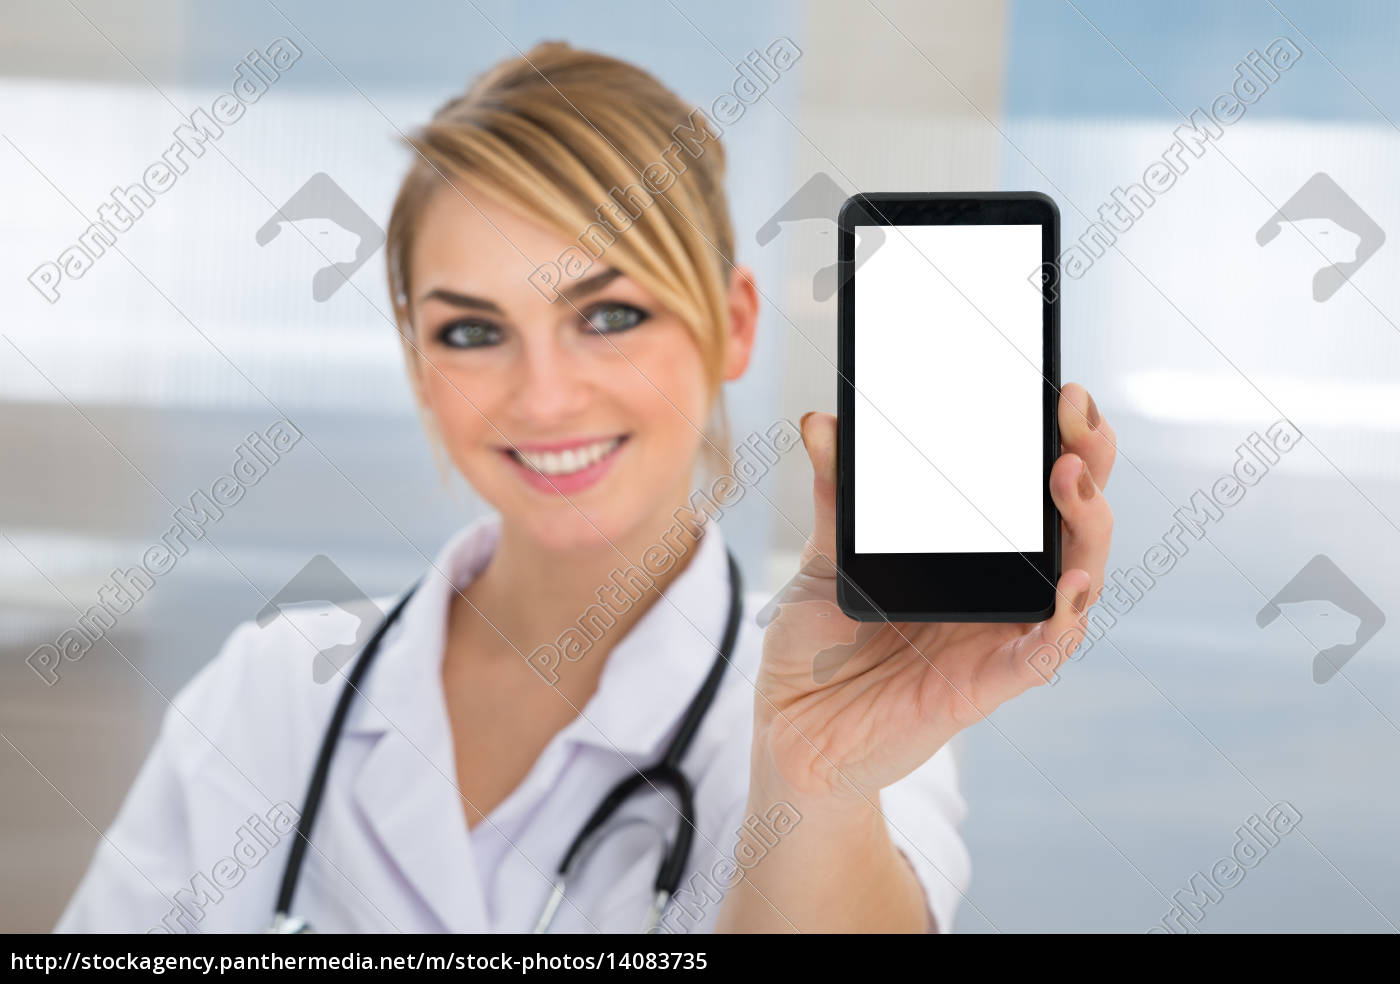 doctor, showing, cellphone - 14083735